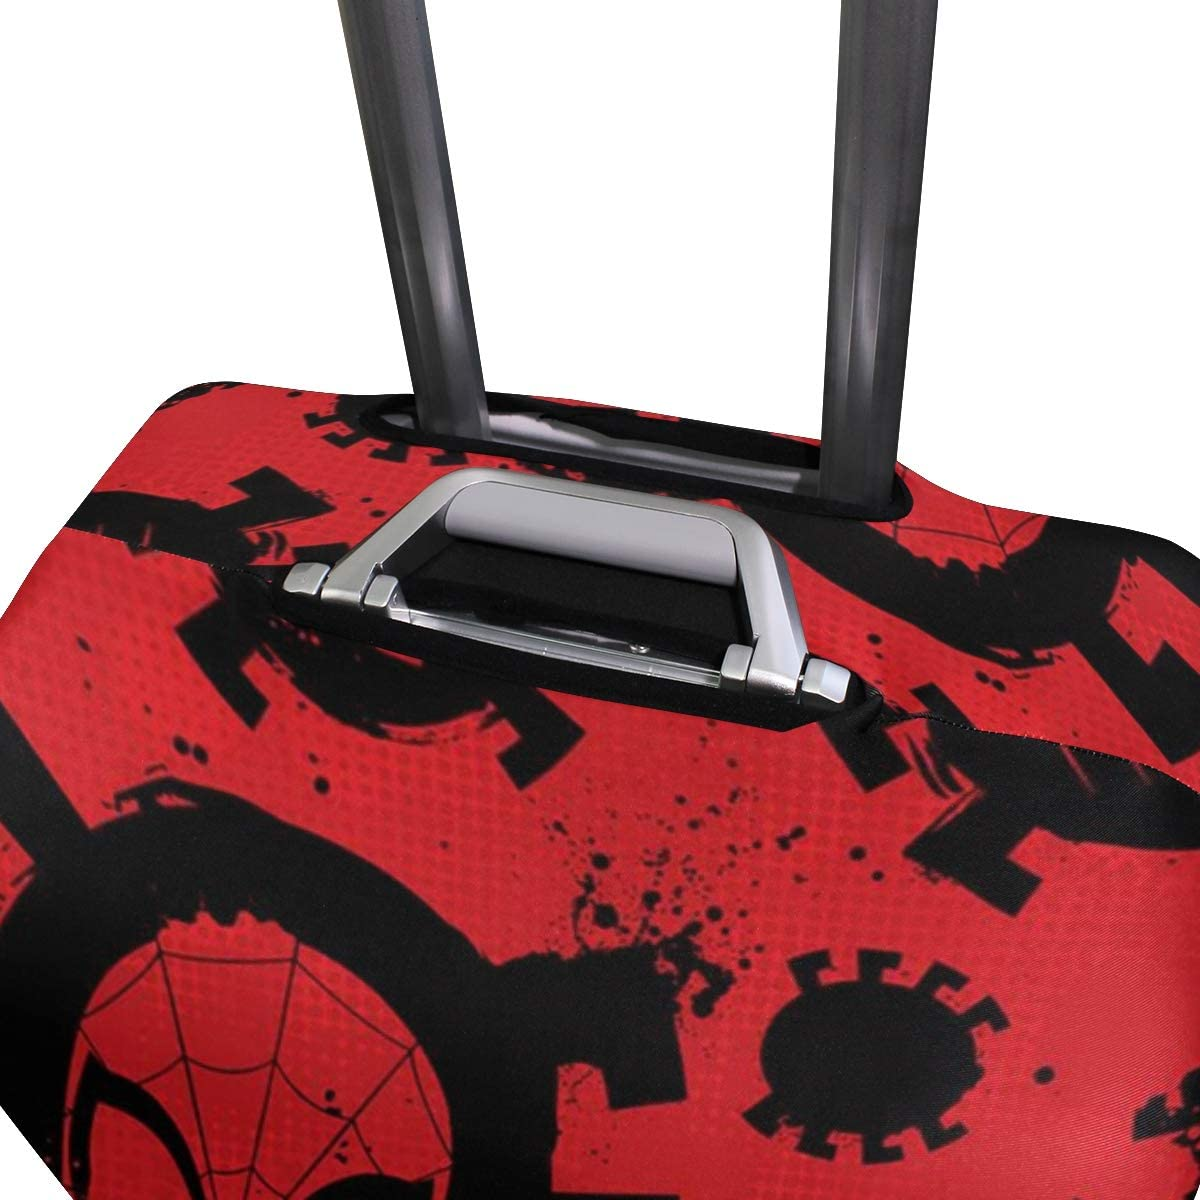 Spiderman Art Travel Luggage Cover Suitcase Protector Fits 26-28 Inch Washable Baggage Covers